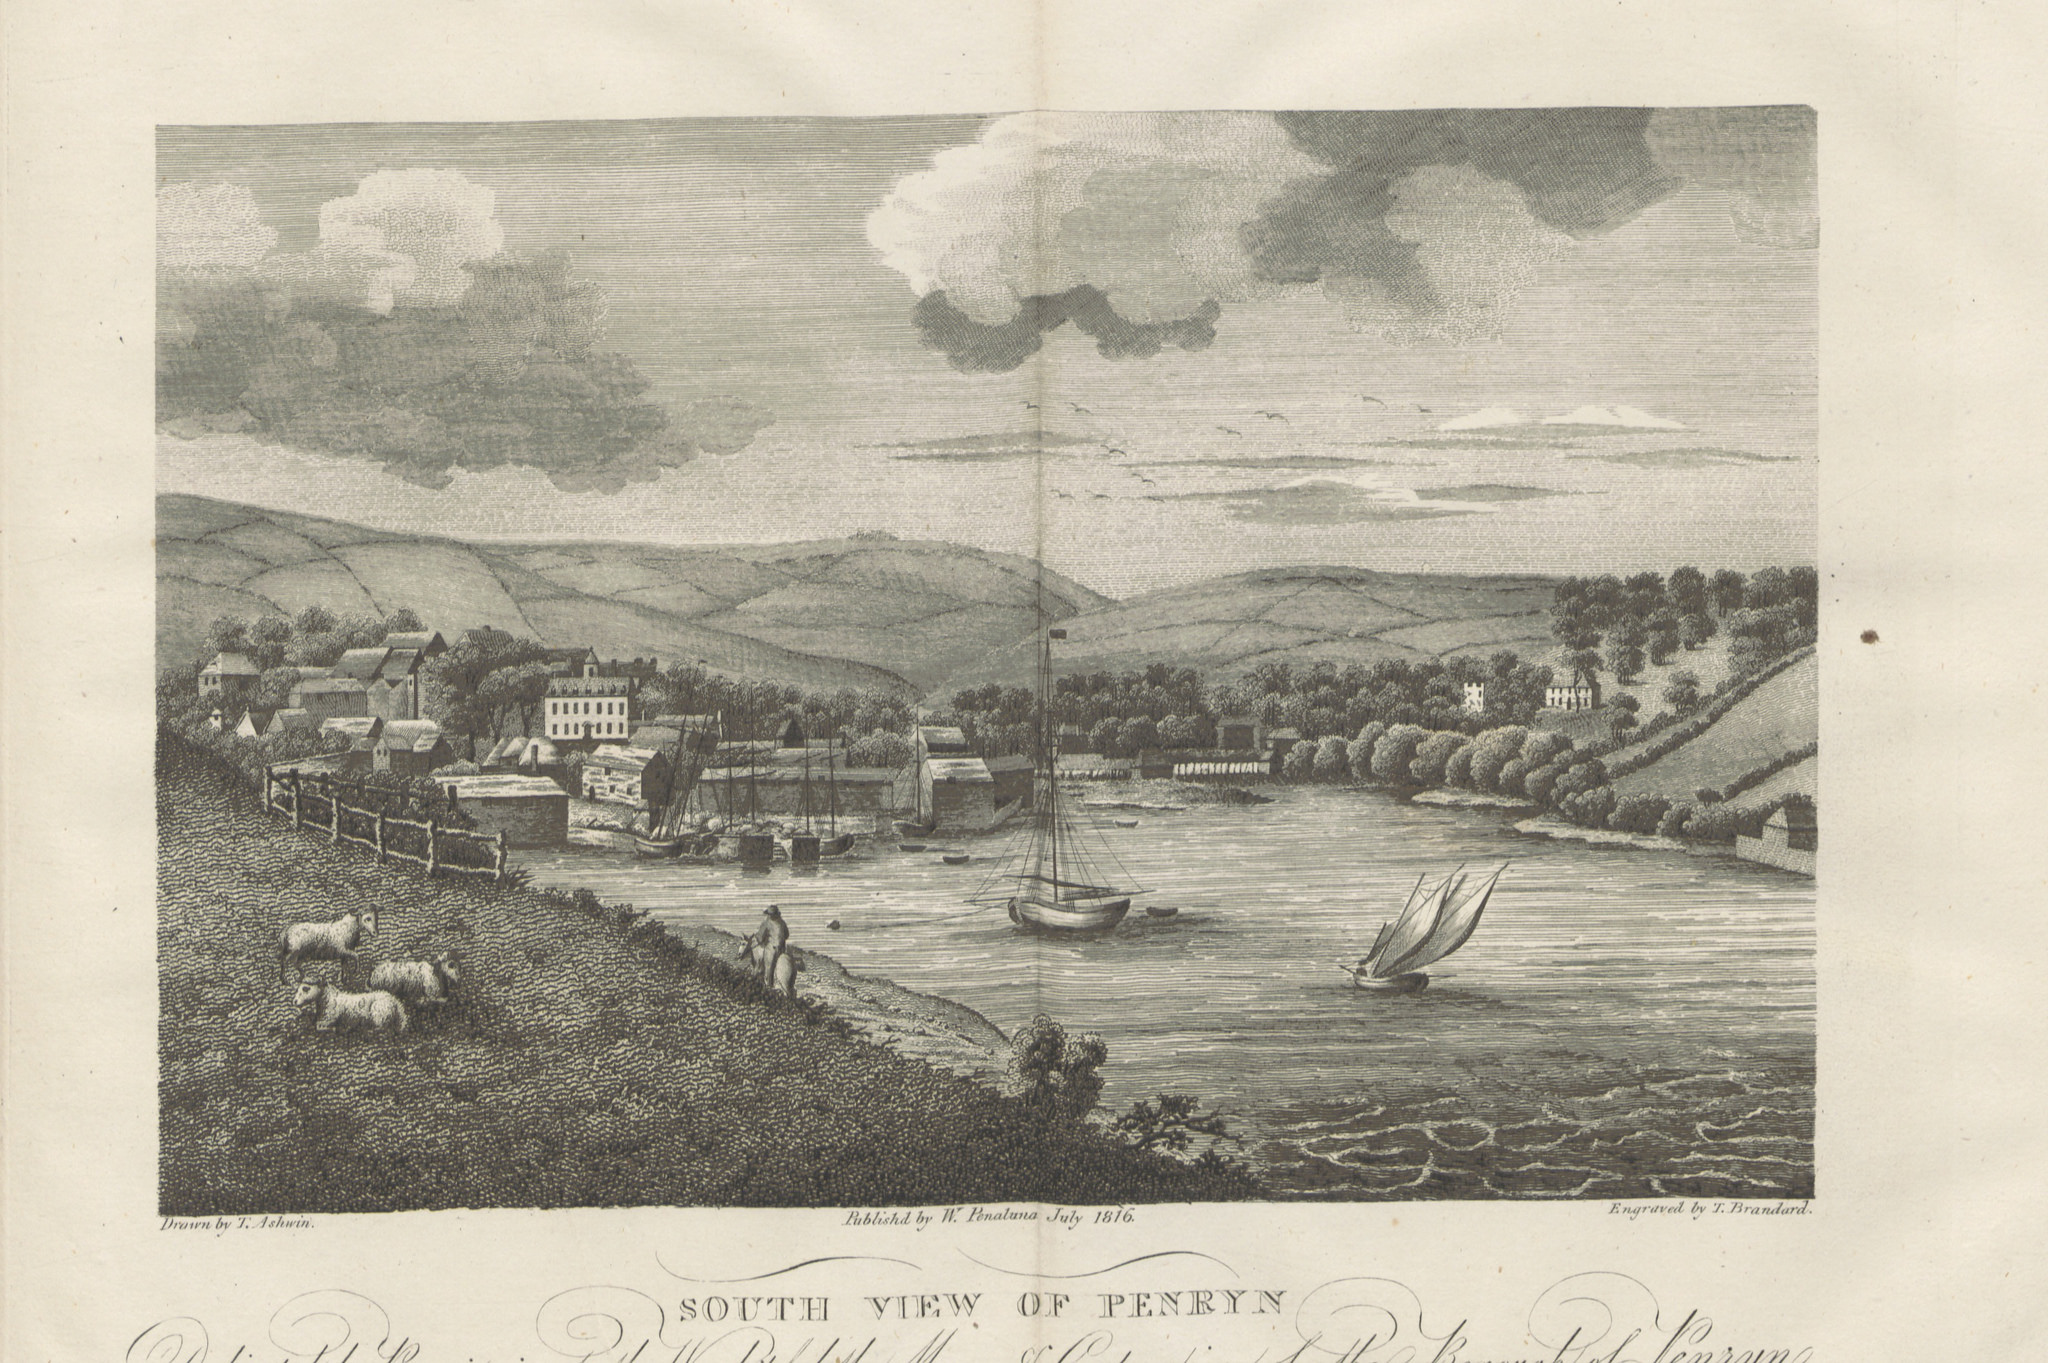 Penryn in 1816 from the south